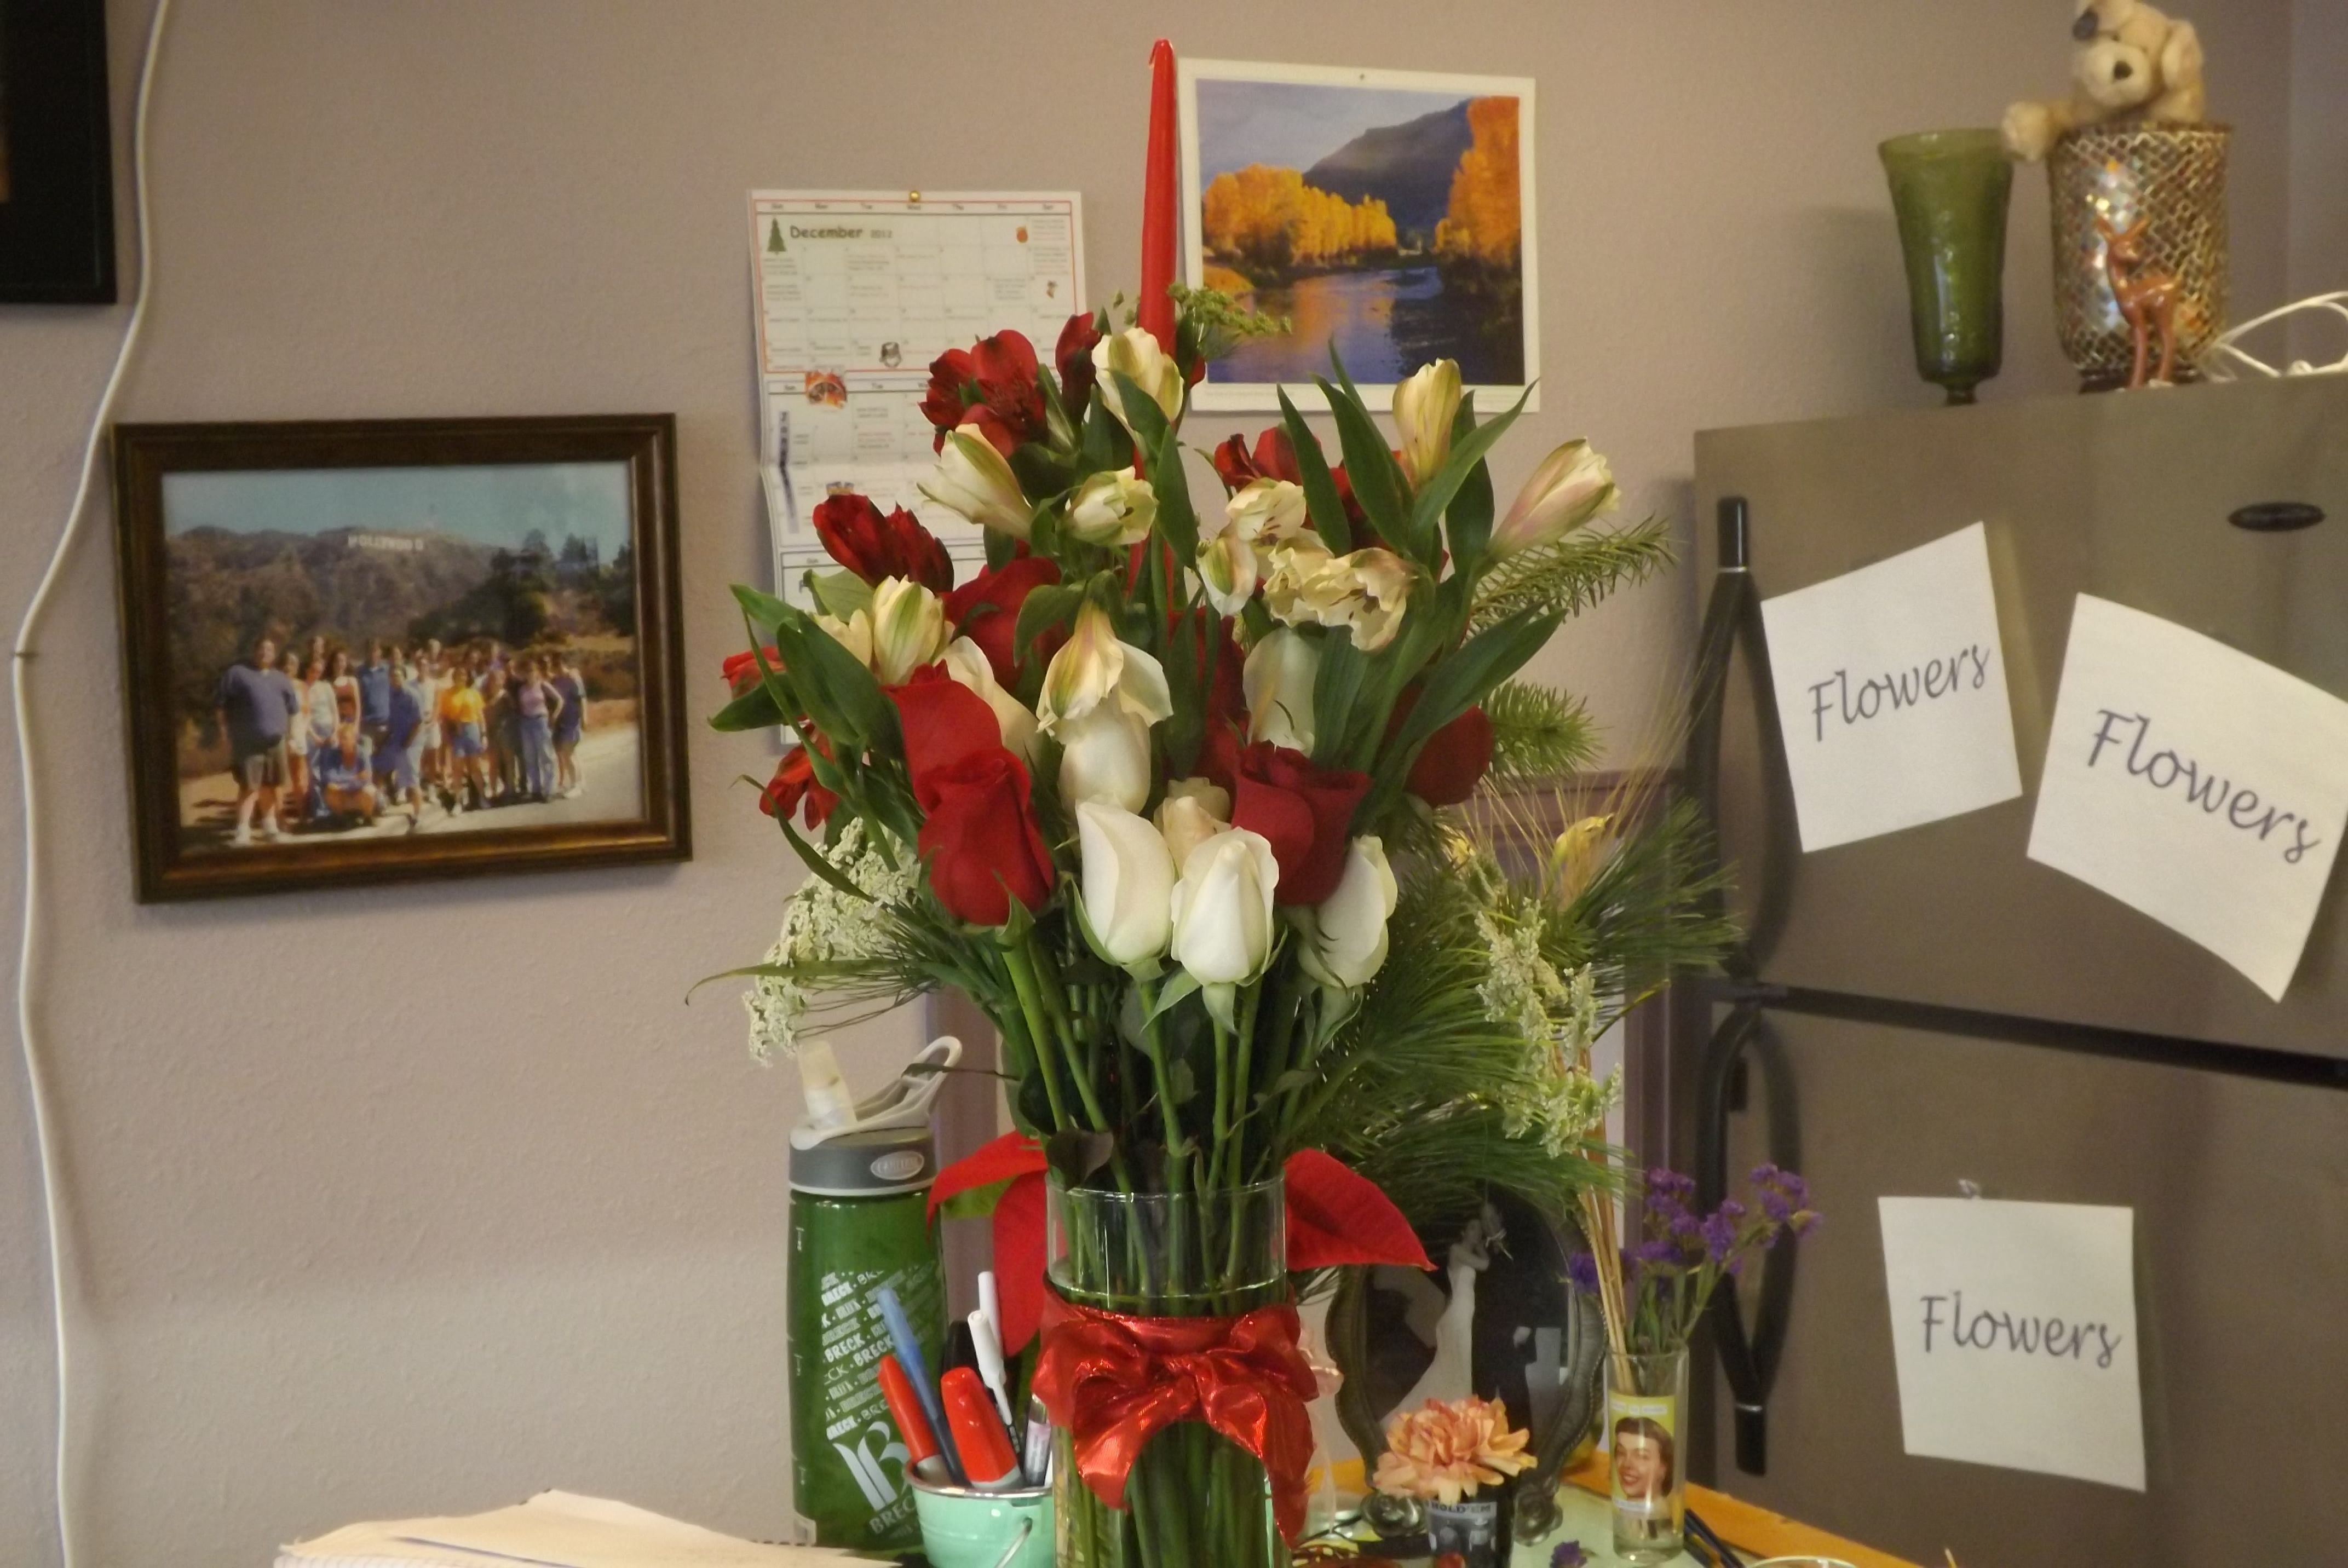 The first Christmas arrangement for the season 2012